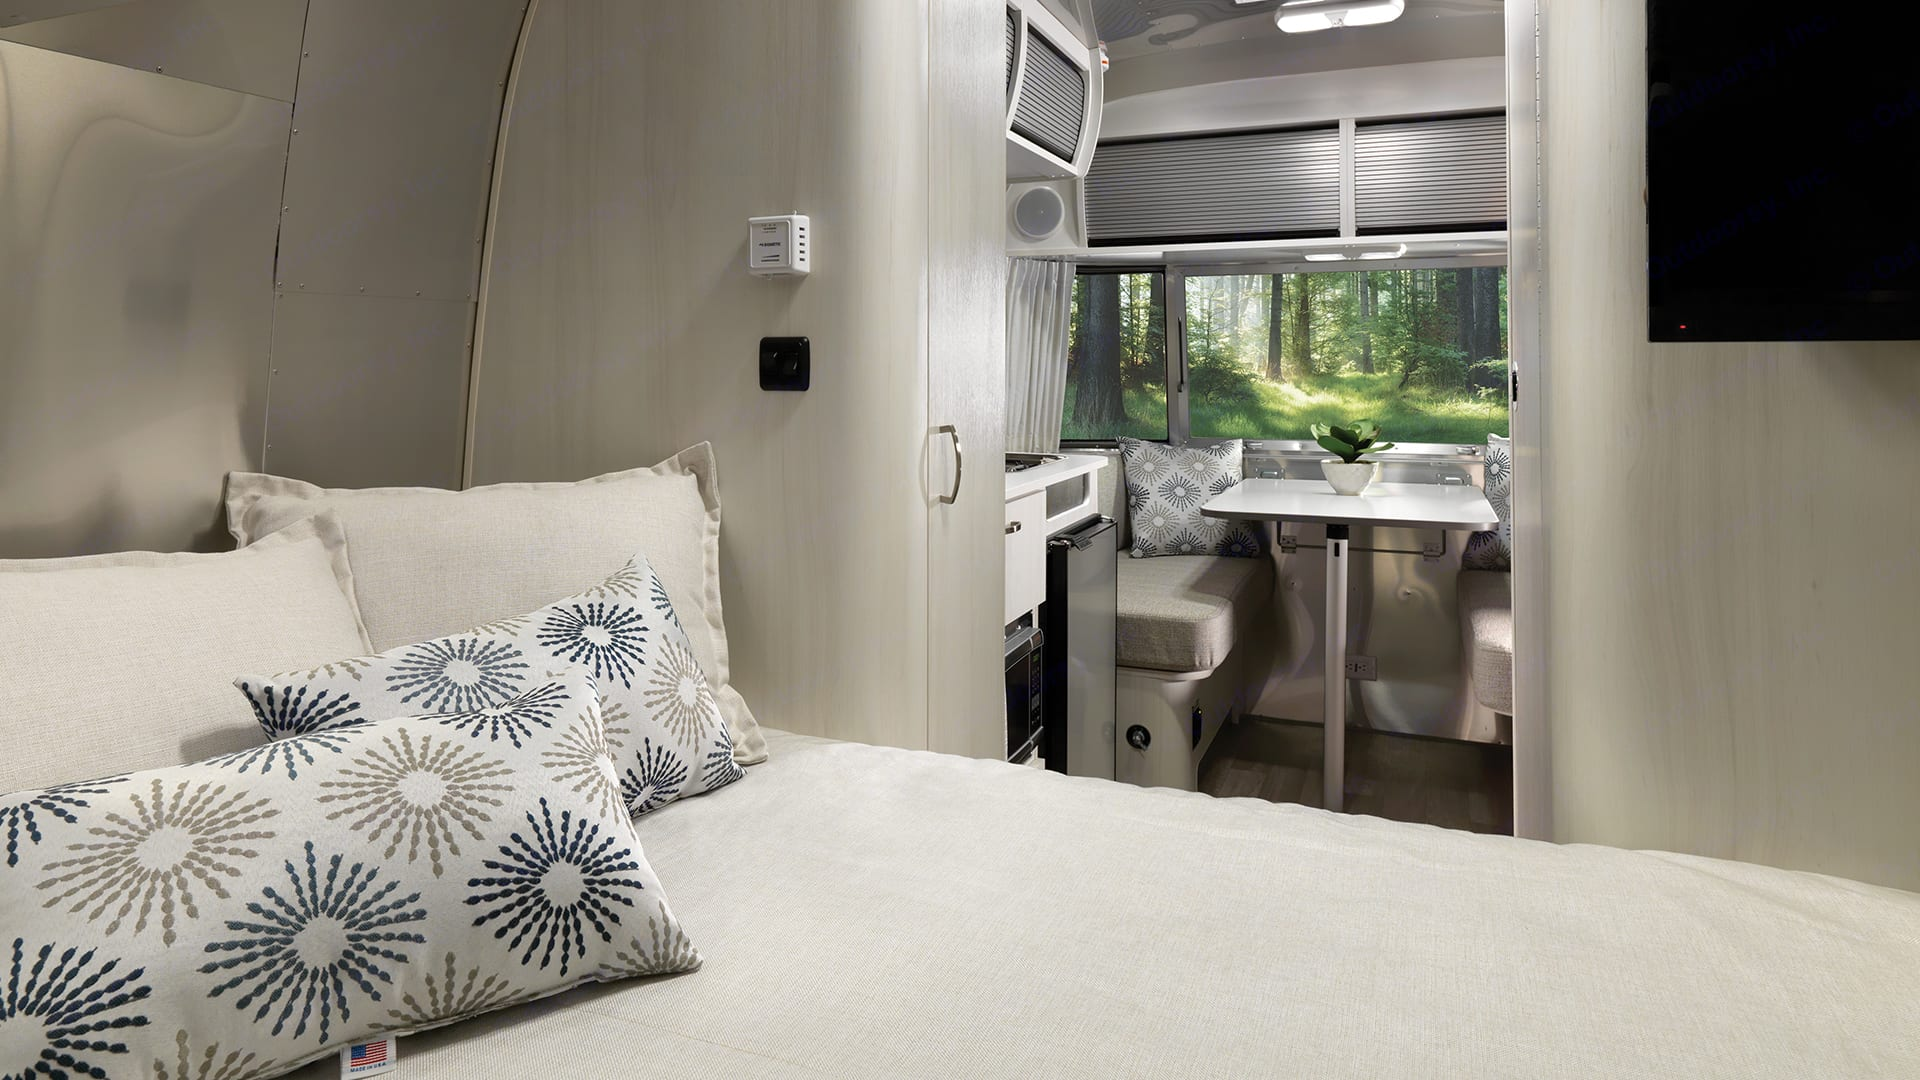 Bed. Airstream Sport 2019